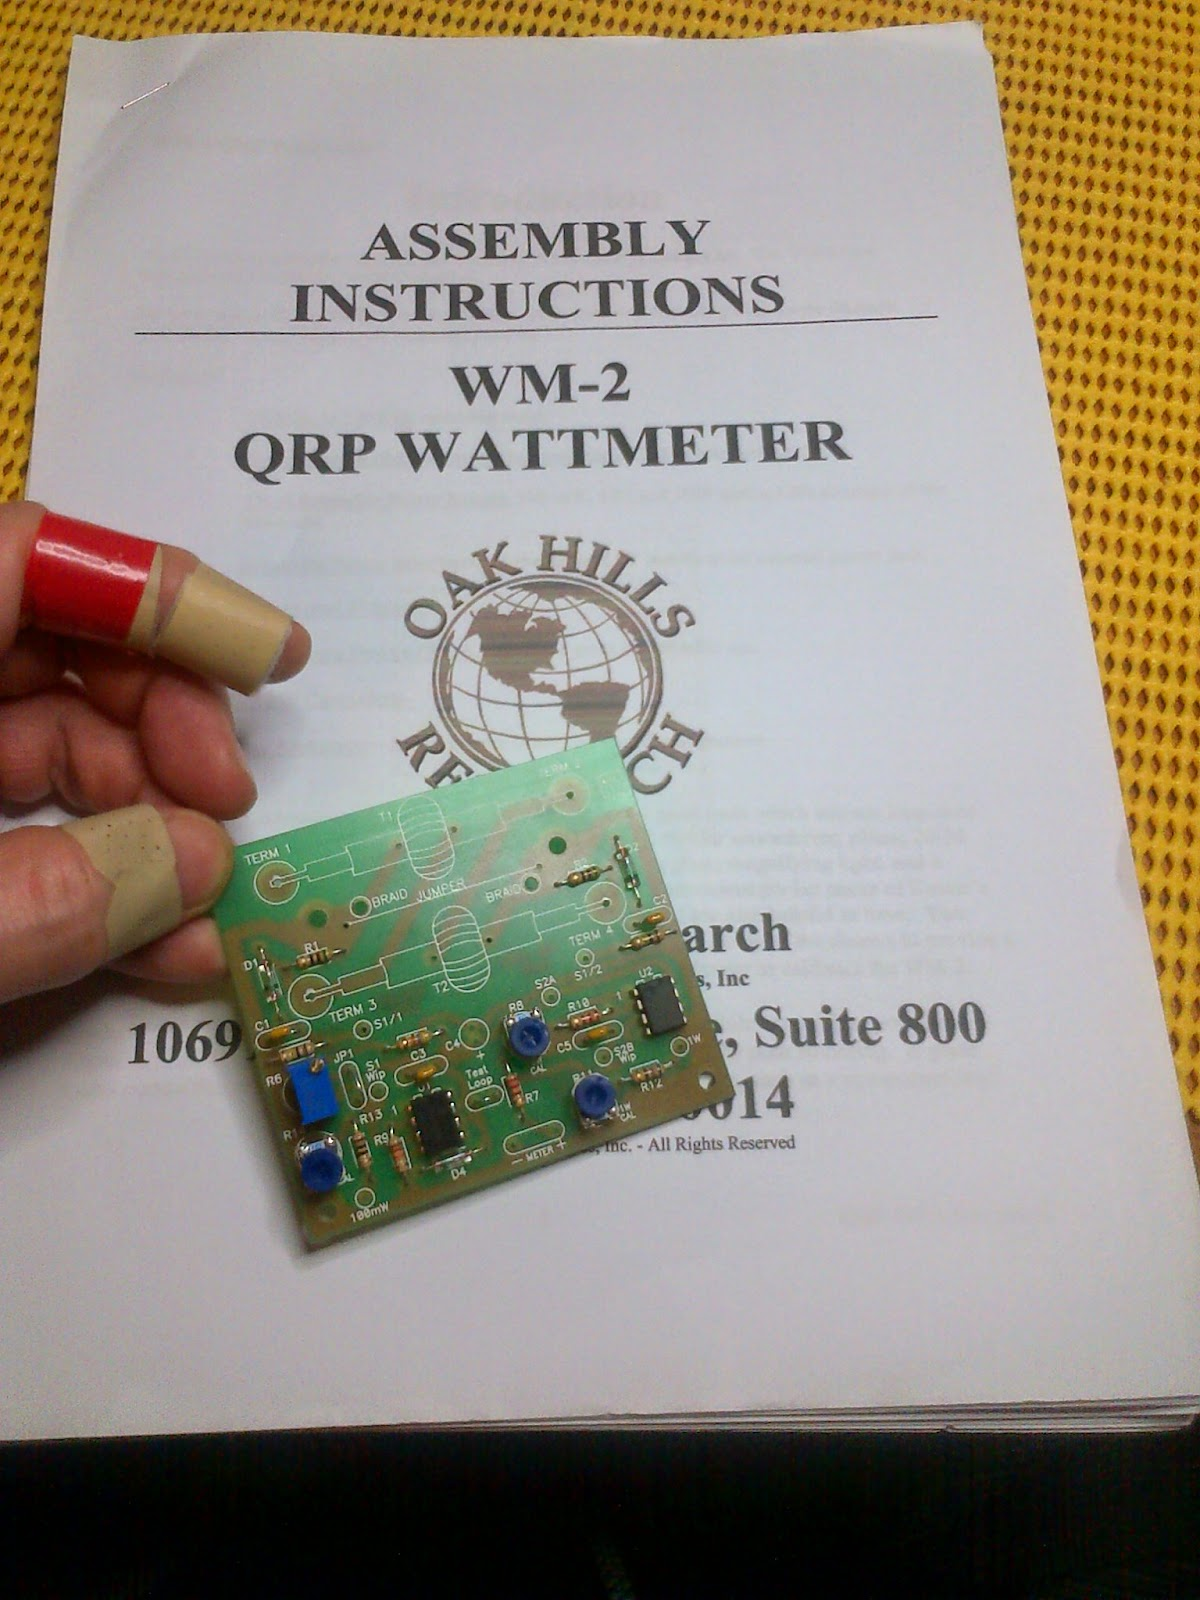 2E0MTT Ham Radio: Oak Hills Research OHR WM-2 Watt meter